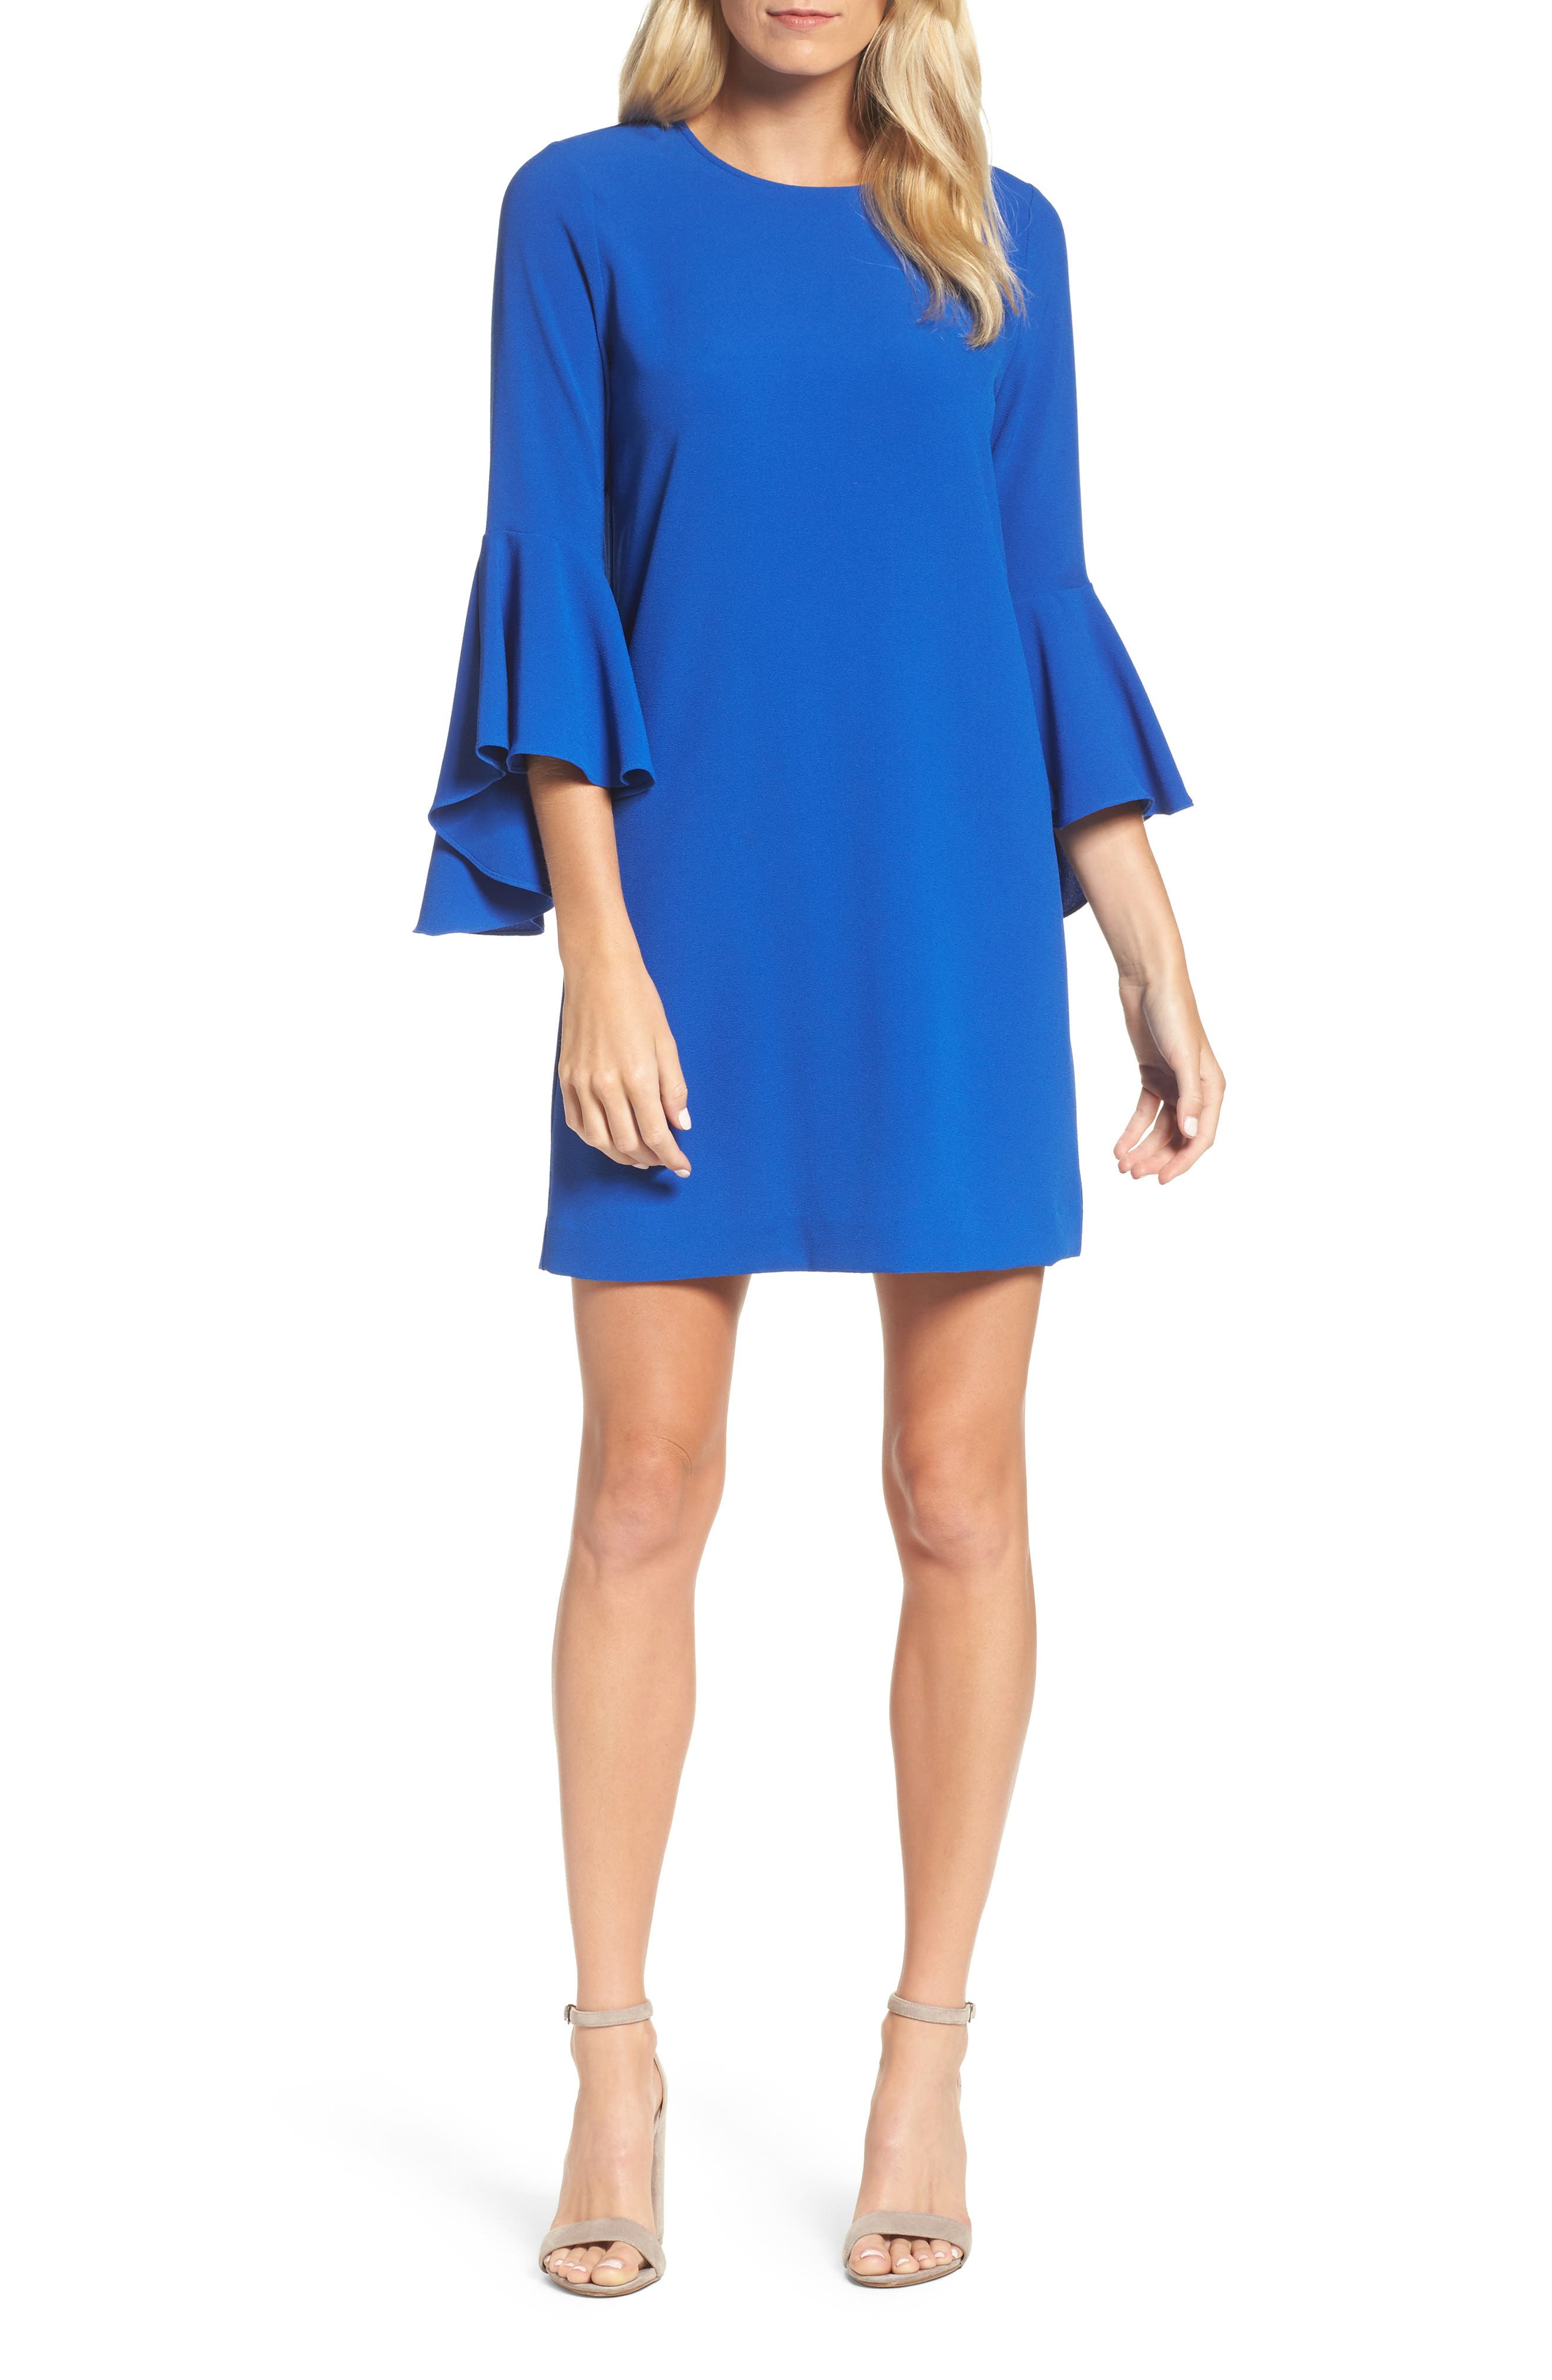 Felicity & Coco Bell Sleeve Shift Dress (Nordstrom Exclusive)